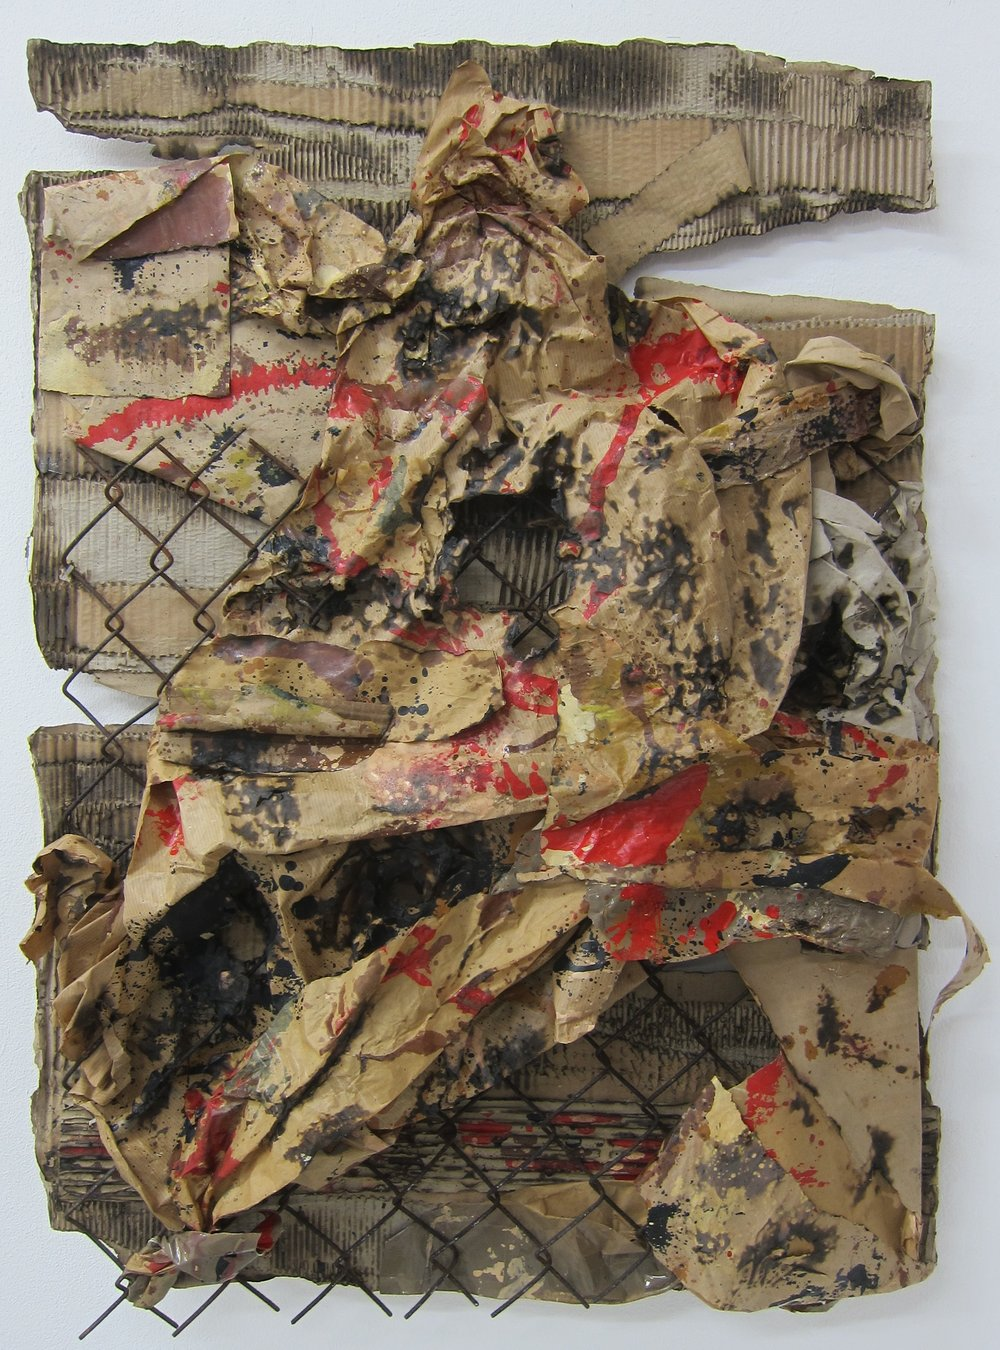 Womble Burner.   Cardboard, paper, alkyd resin, fence, fire and water.   80 x 58 cm.  2015.